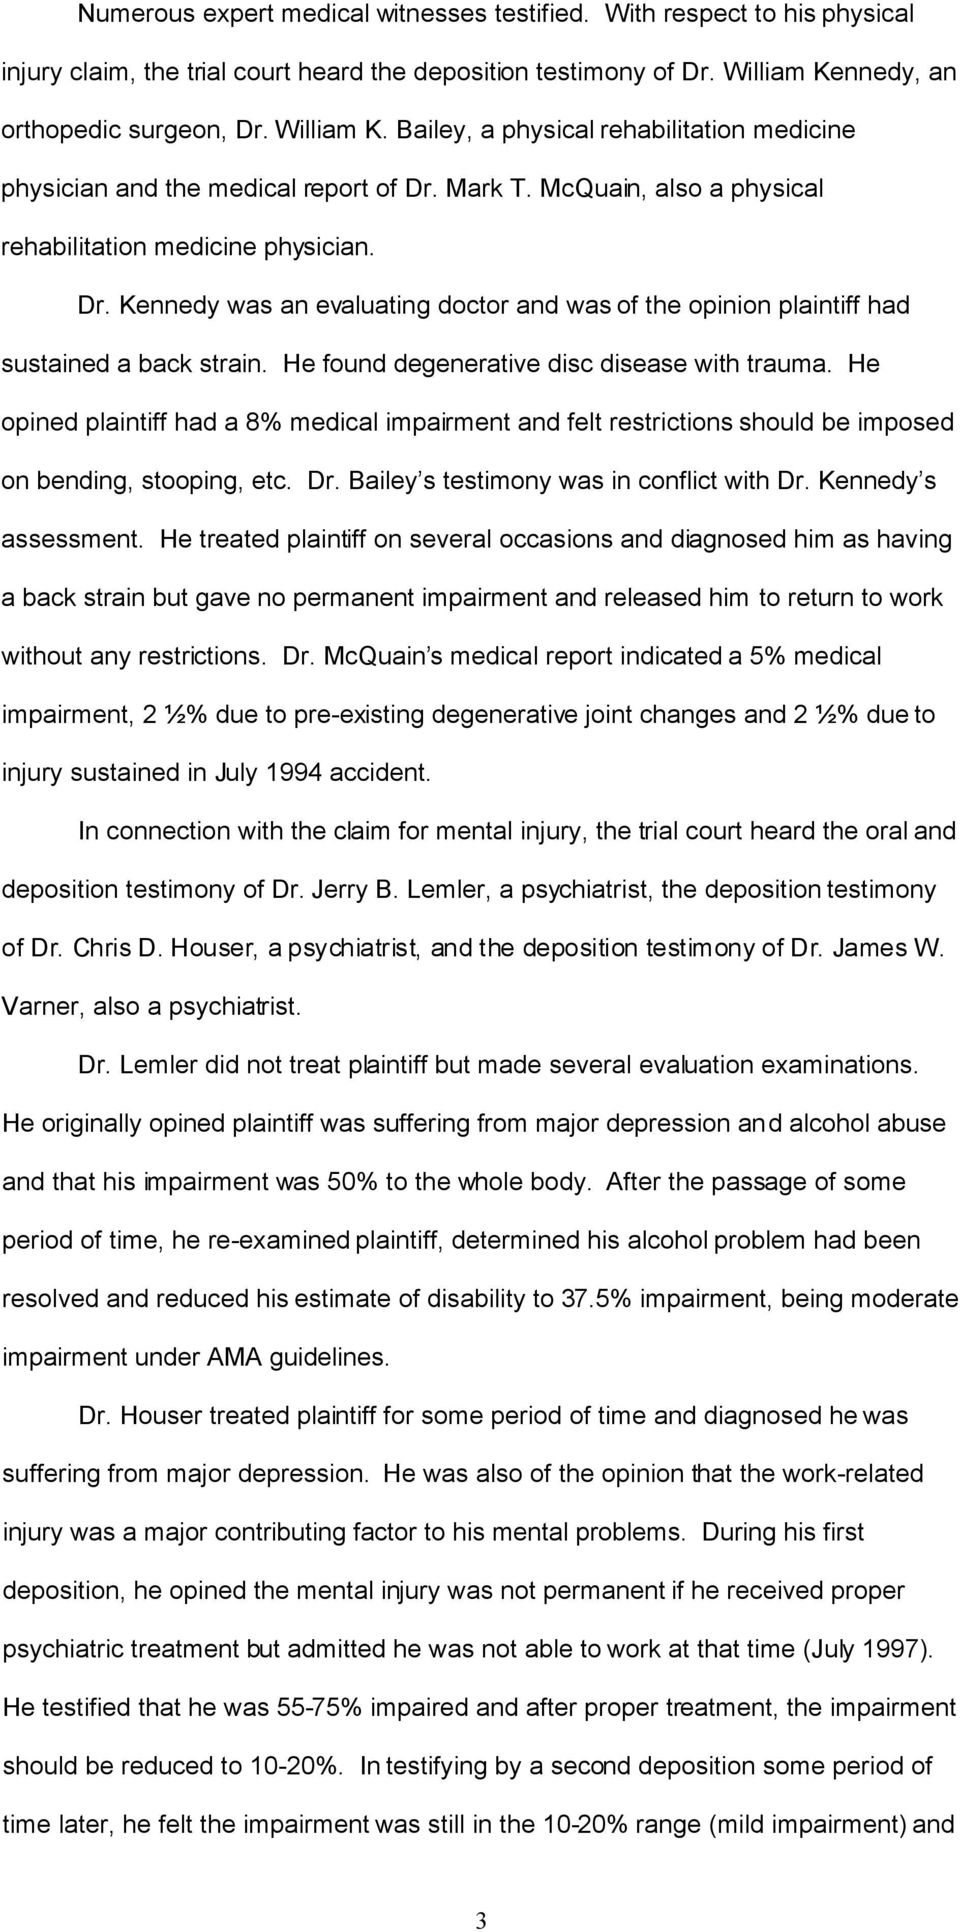 He found degenerative disc disease with trauma. He opined plaintiff had a 8% medical impairment and felt restrictions should be imposed on bending, stooping, etc. Dr.